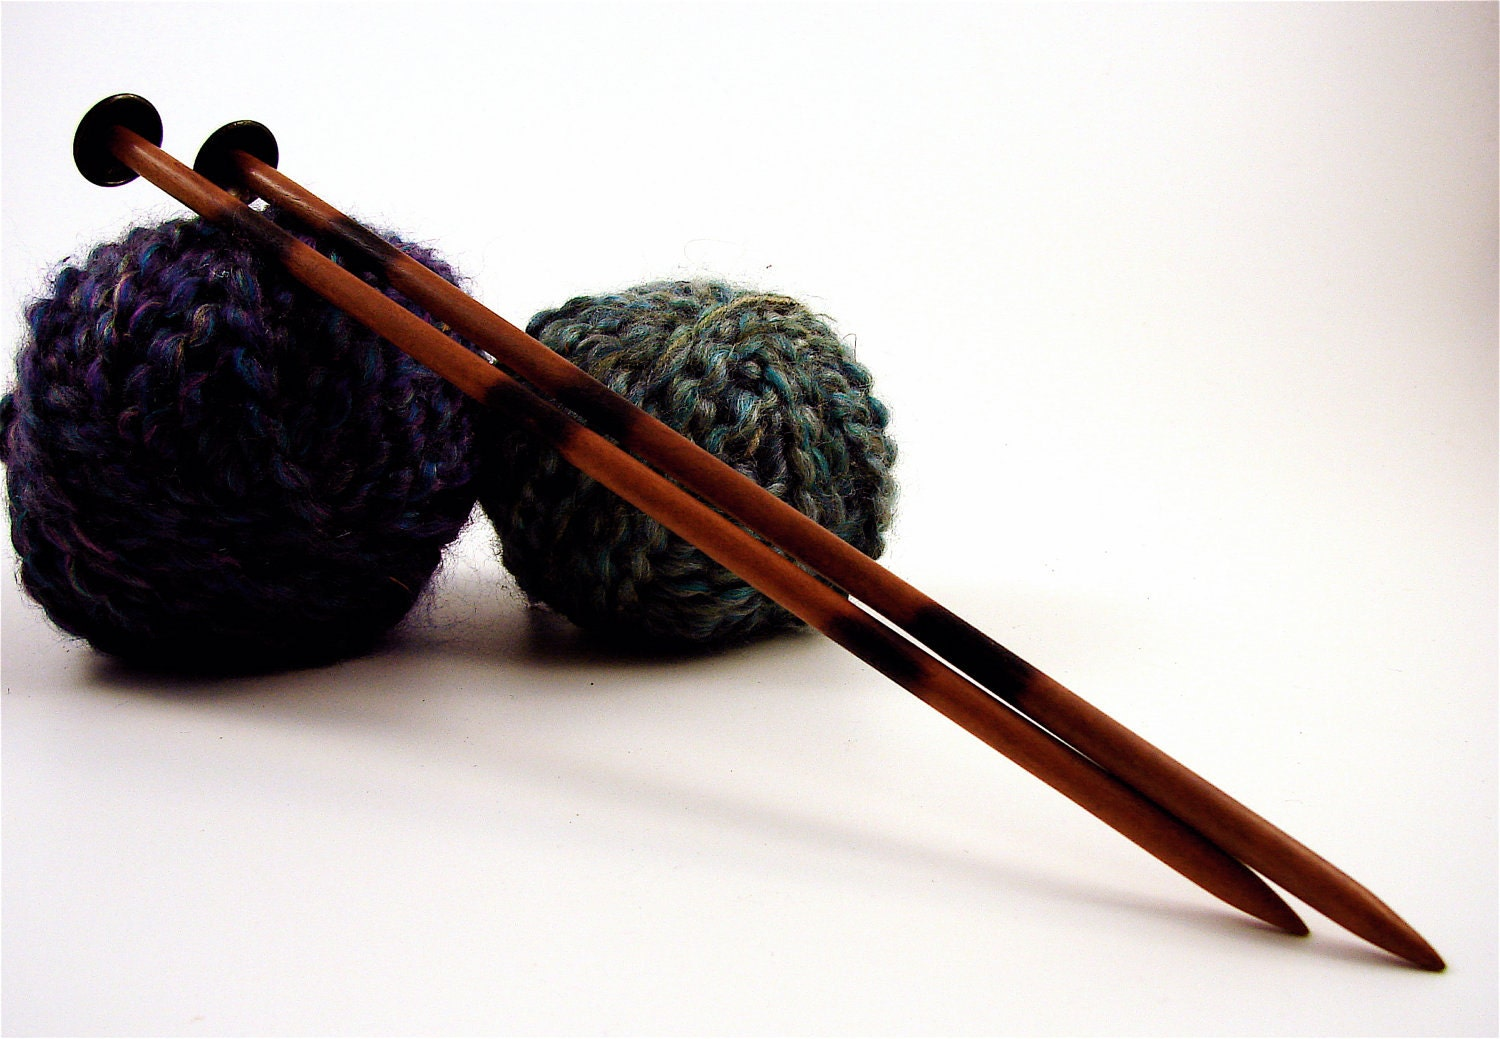 Wooden Knitting Needles : Hand carved Tiger wood Knitting needles size 9 by Wallingandsons